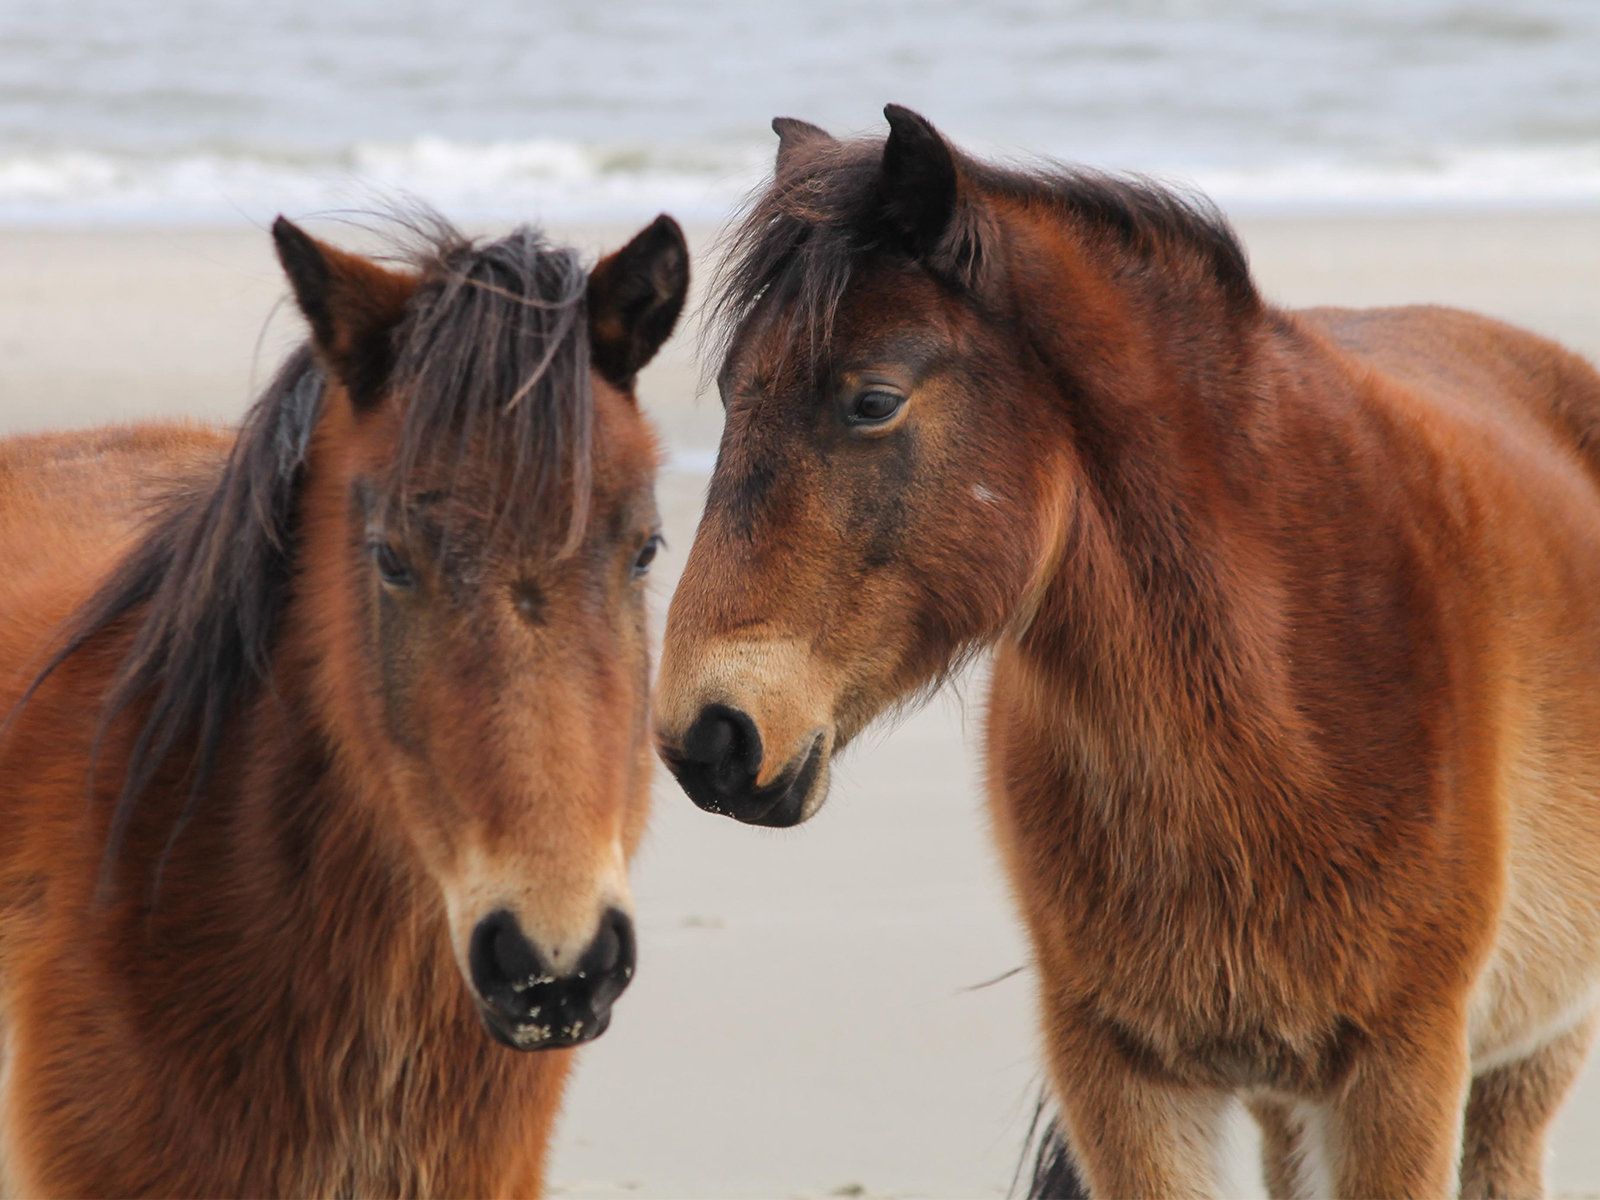 Two horses on a February day on the beach in Corolla, North Carolina.